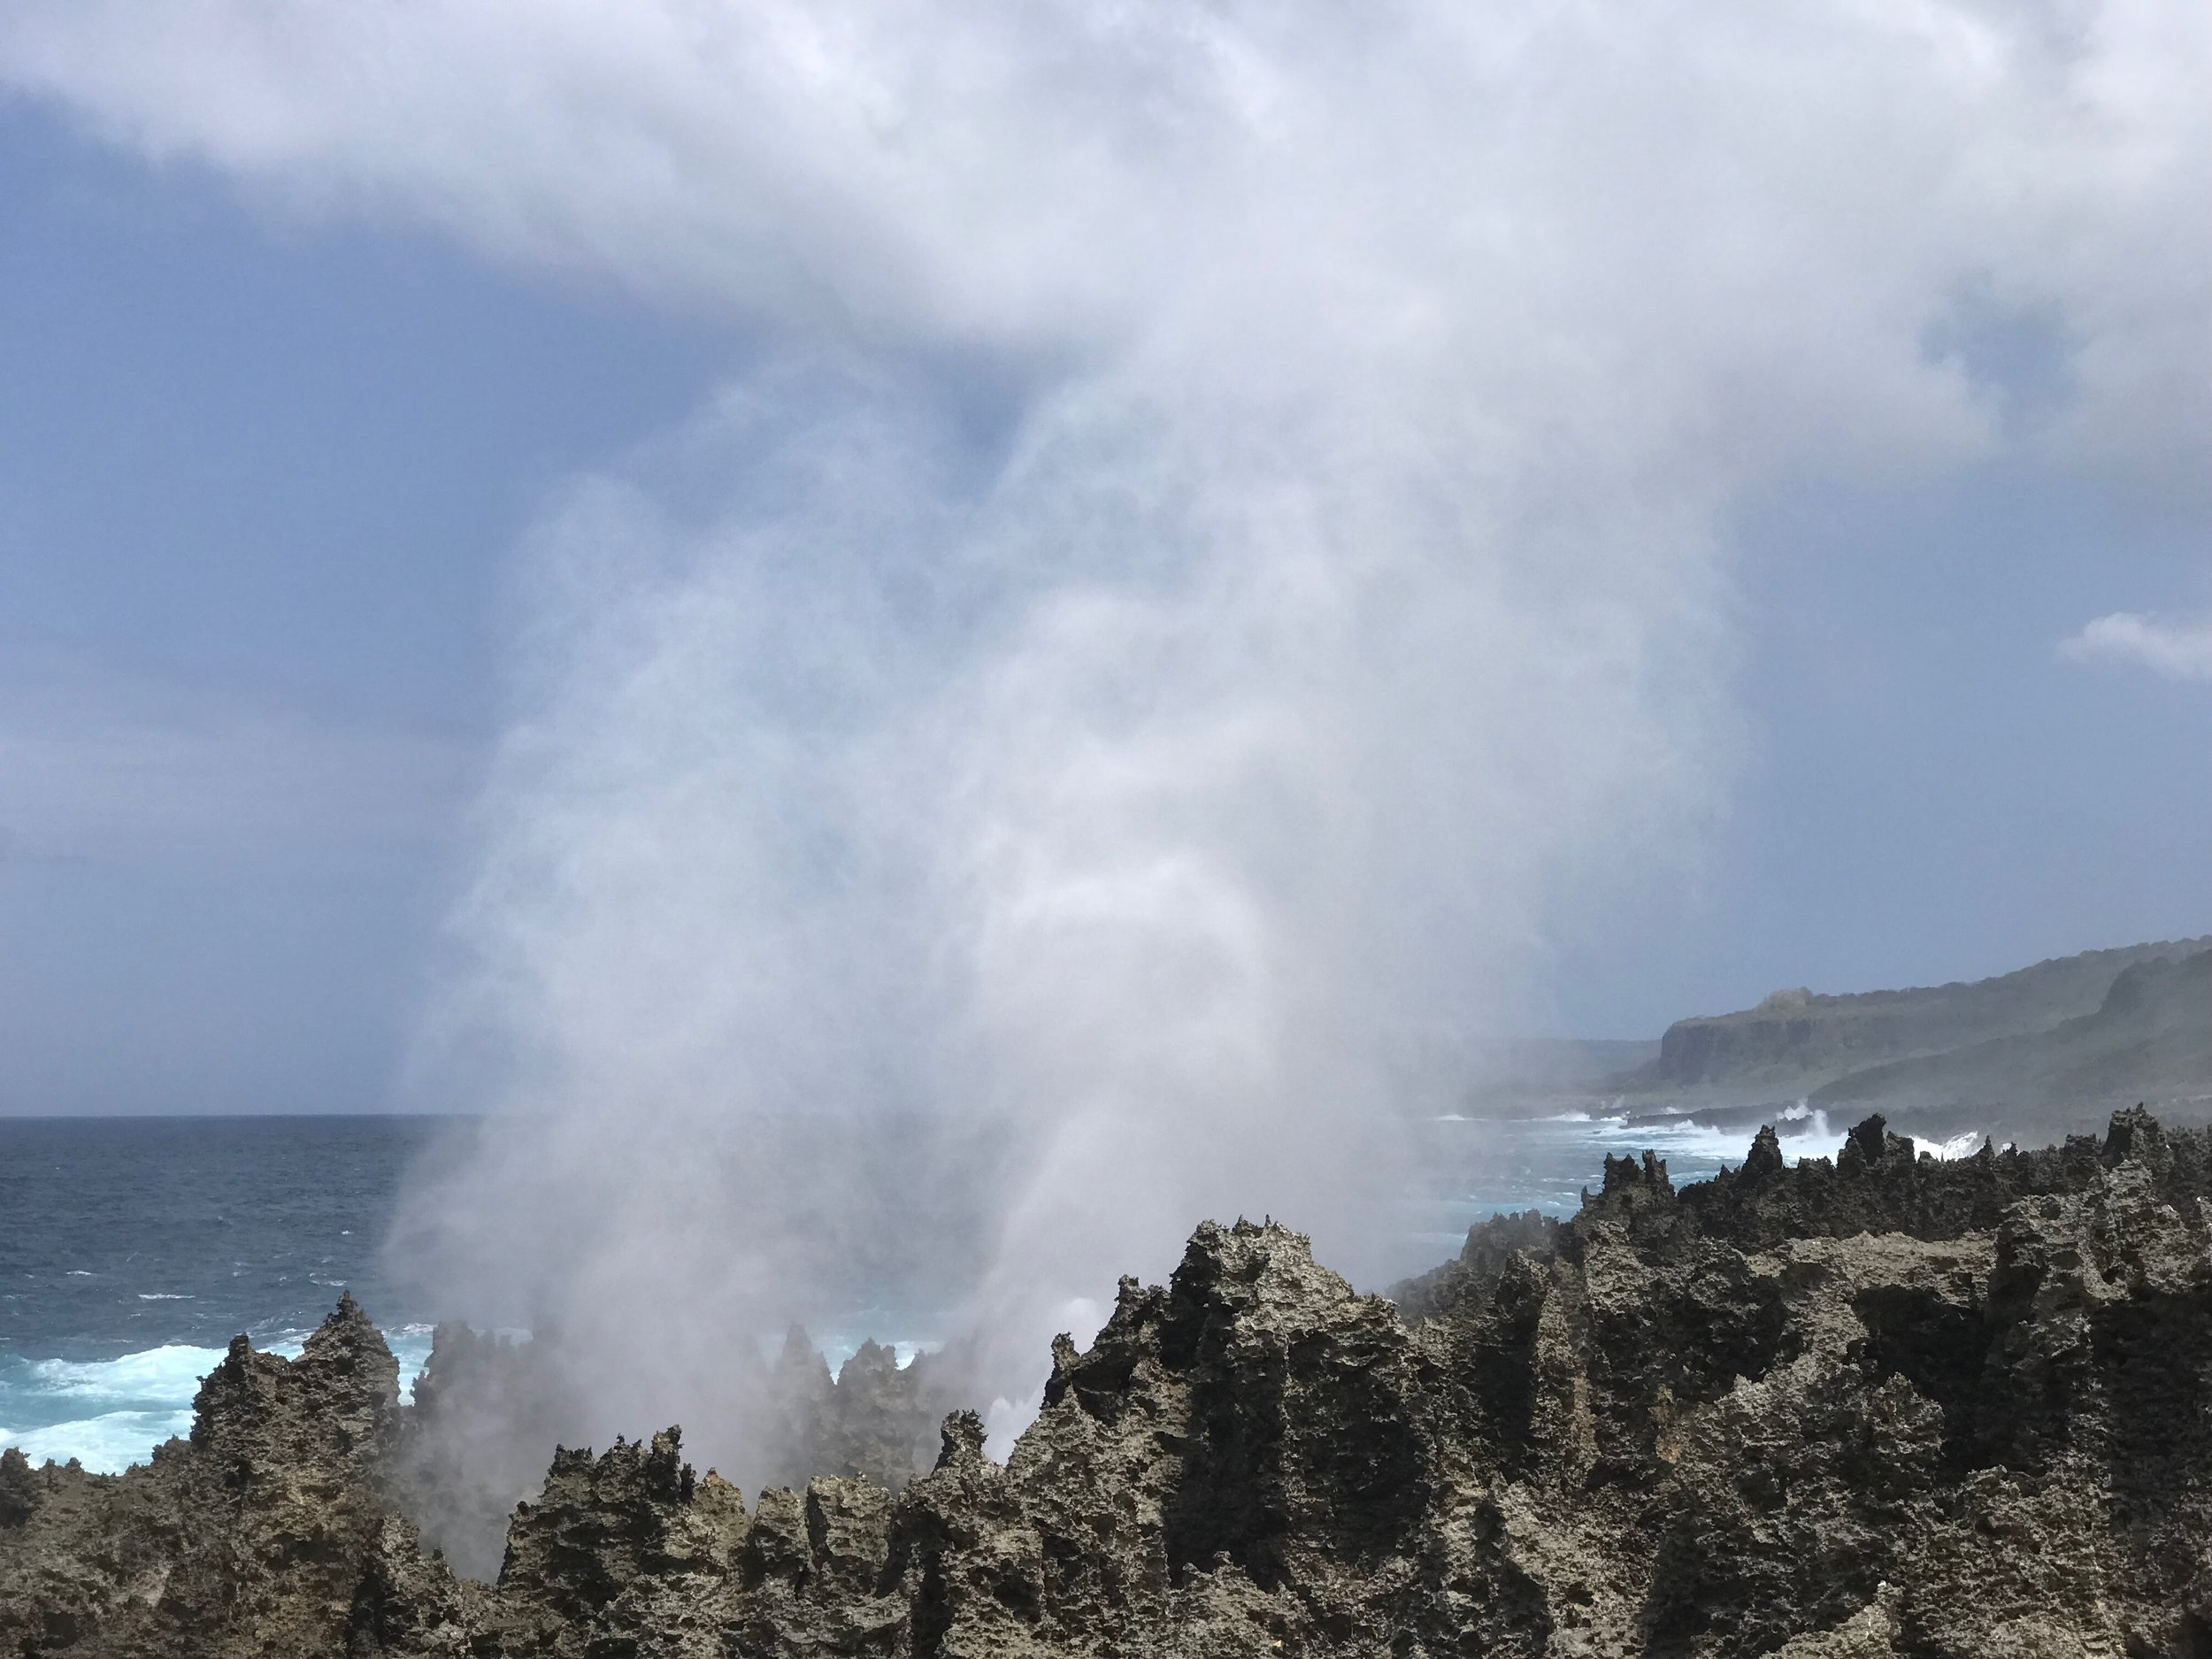 Magnificent wild and rugged coastline at The Blowholes!